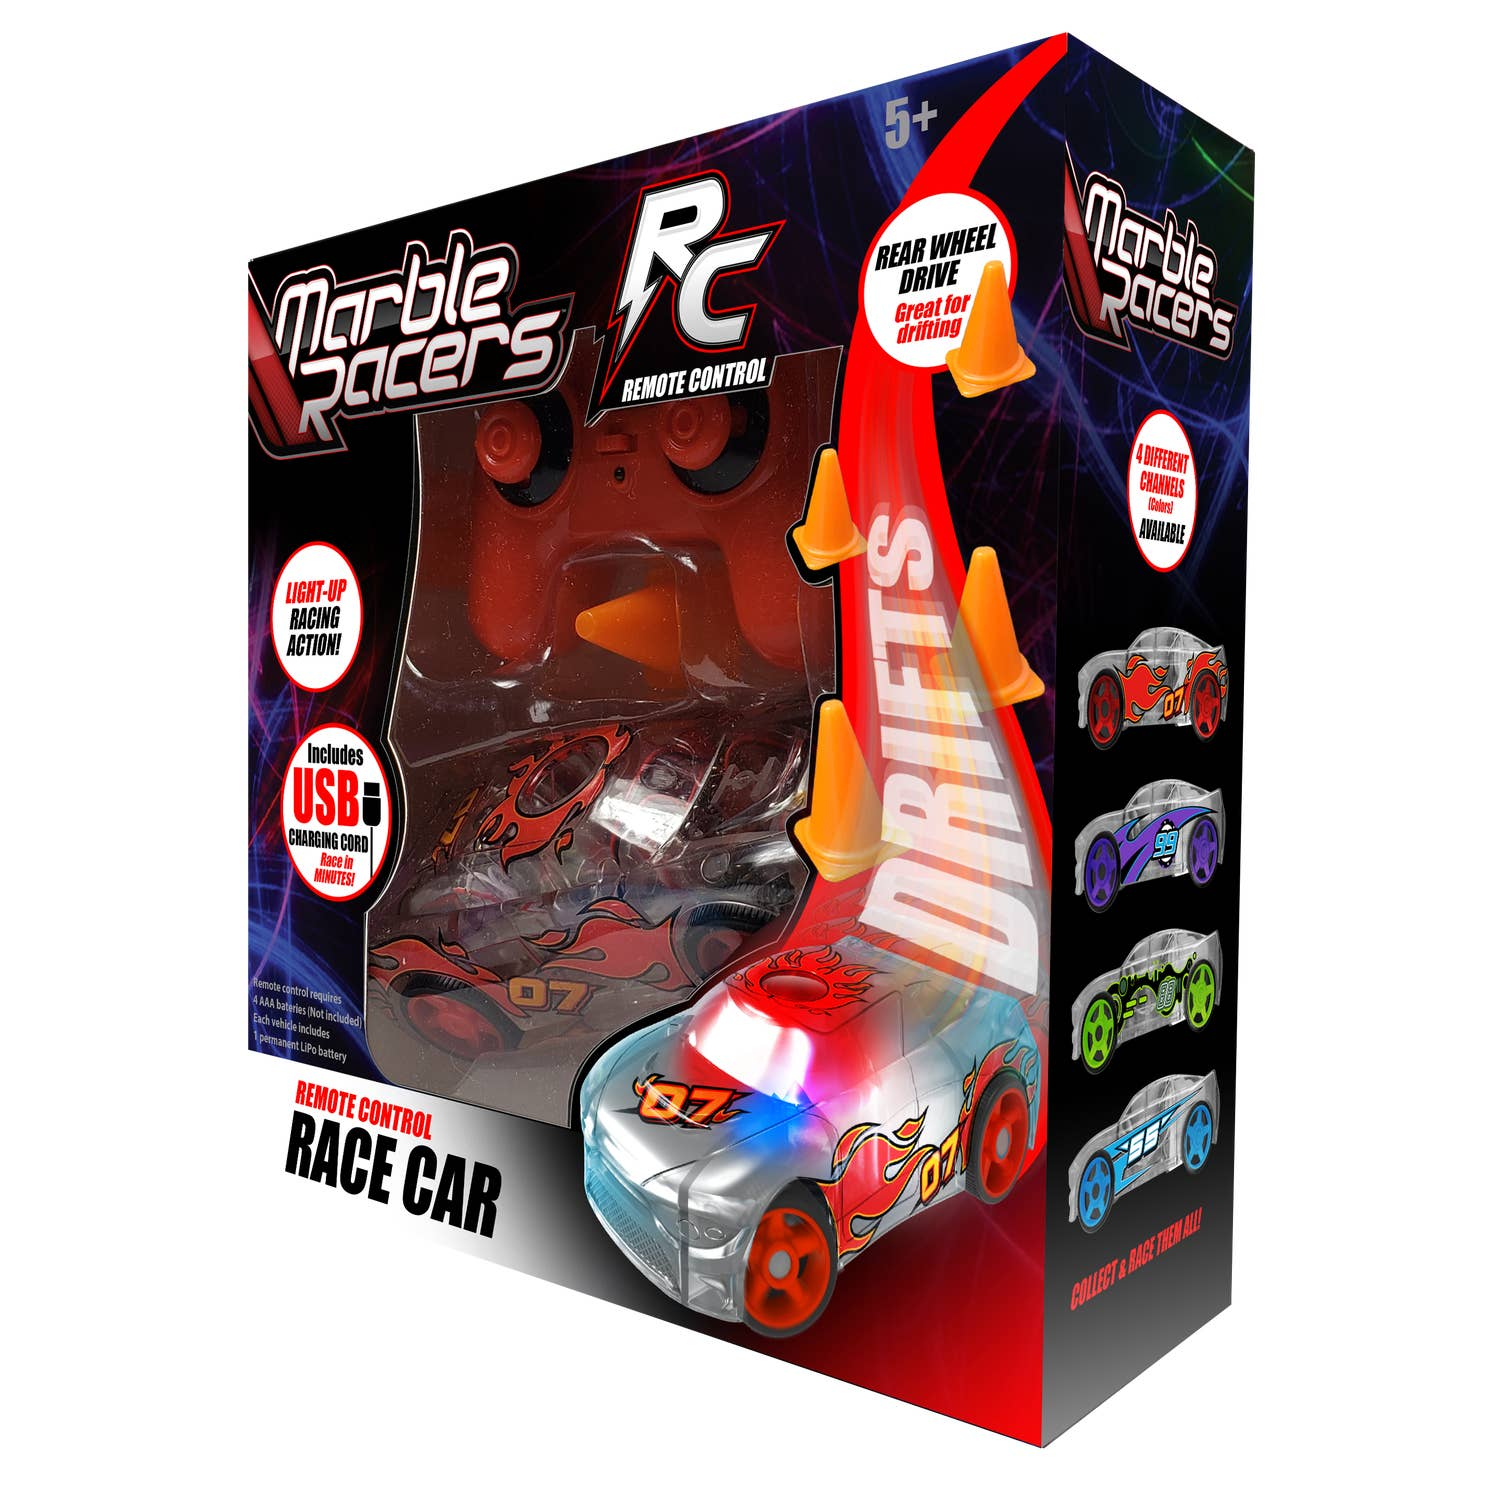 Marble Racers, Race Car Toy, toys, toy store, toy store near me, toys for kids, toys for 5 year old boys, educational toys, kit, rc car, rc cars